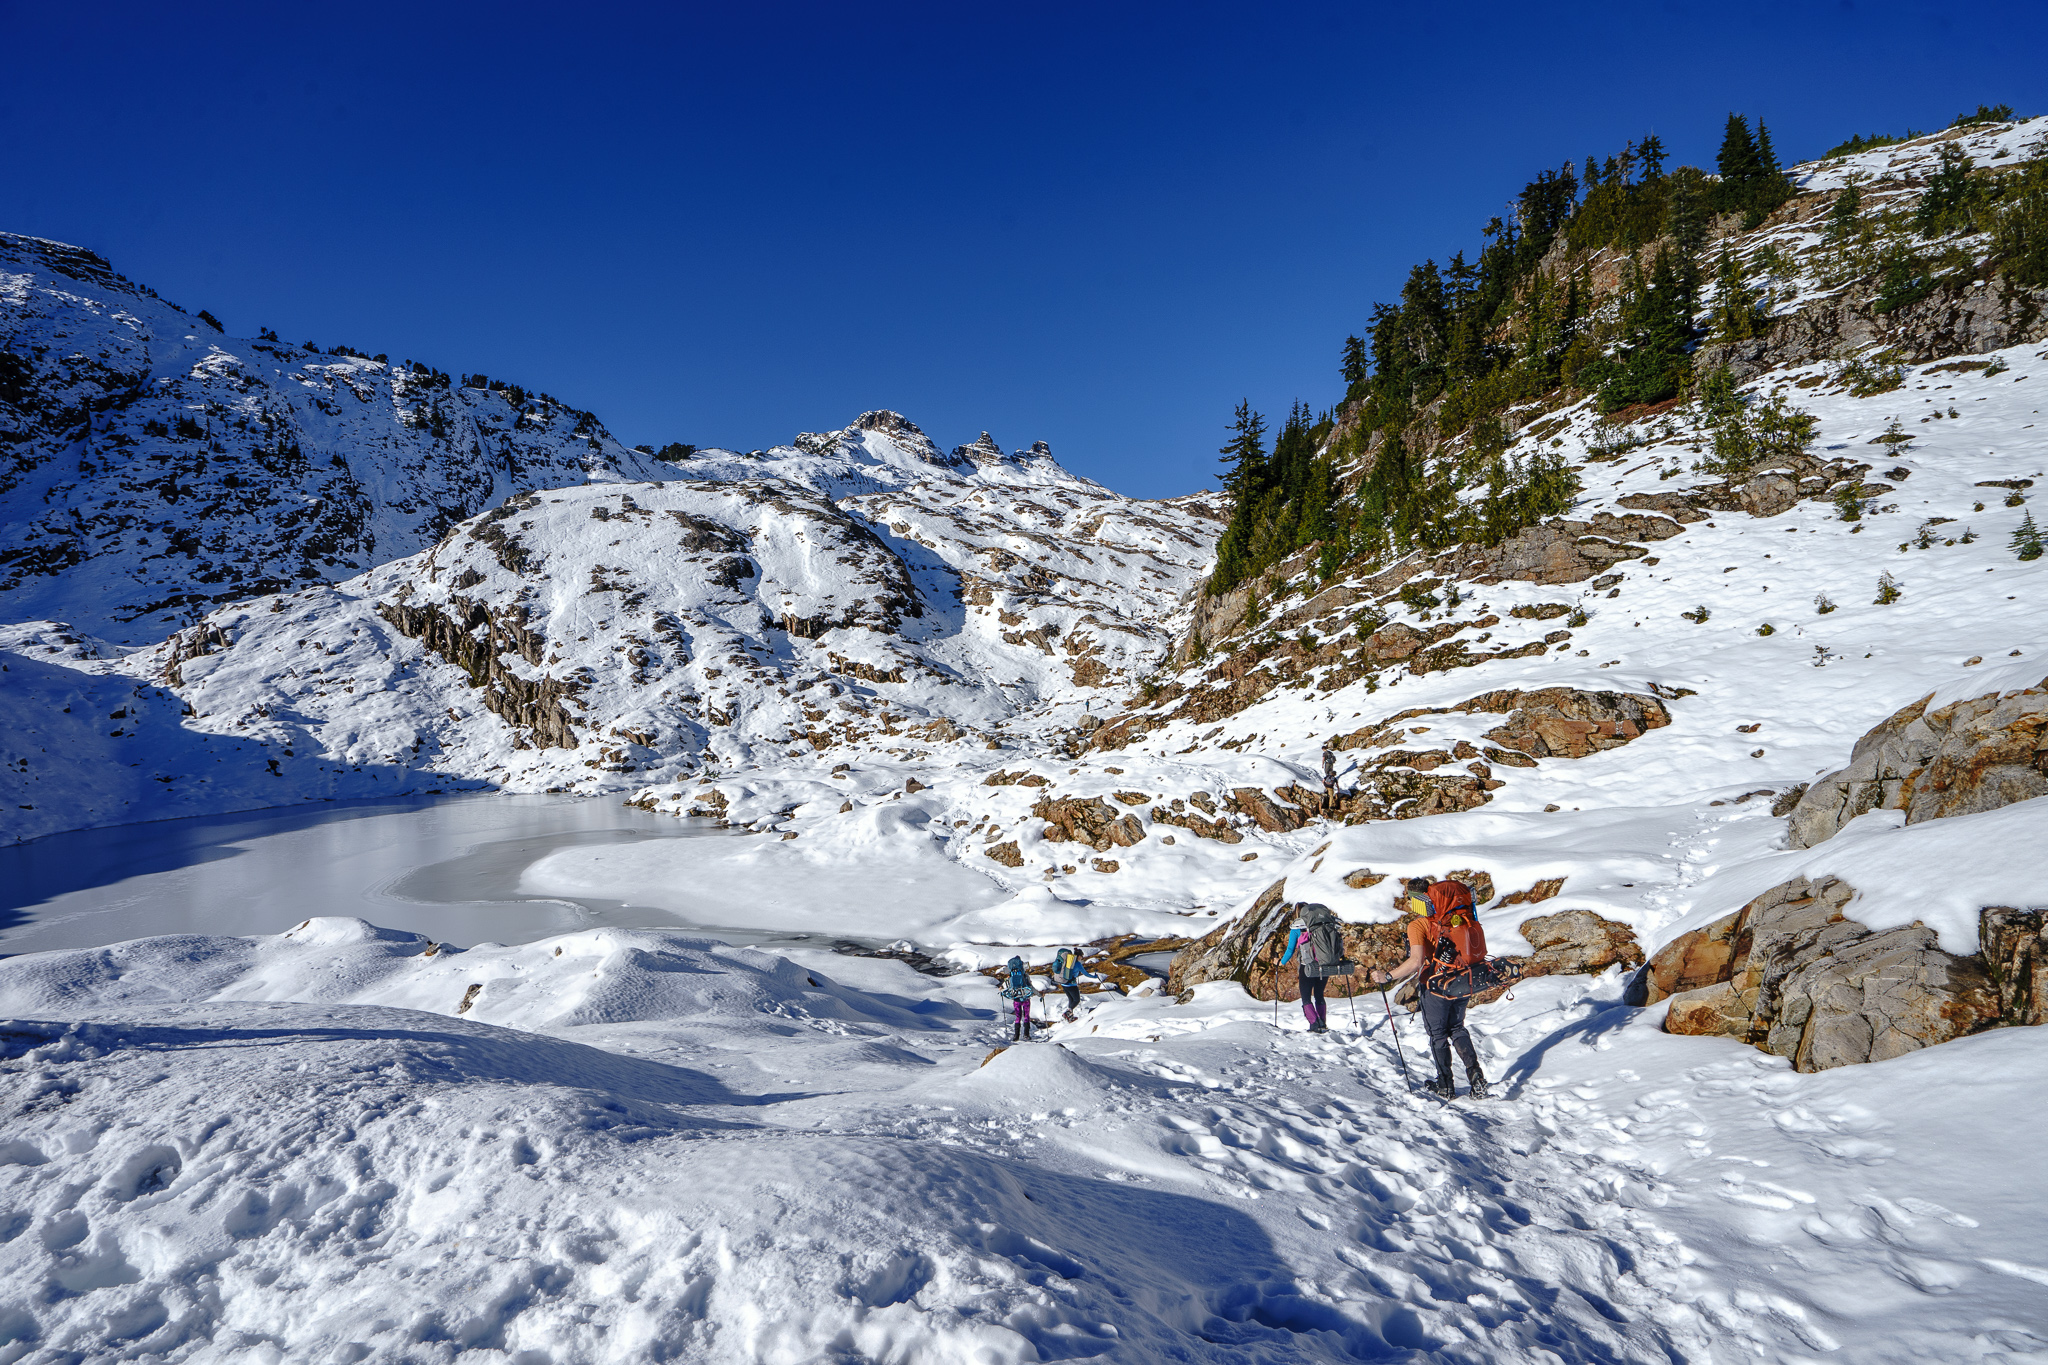 Hiking up the basin. A frozen tarn on the left.